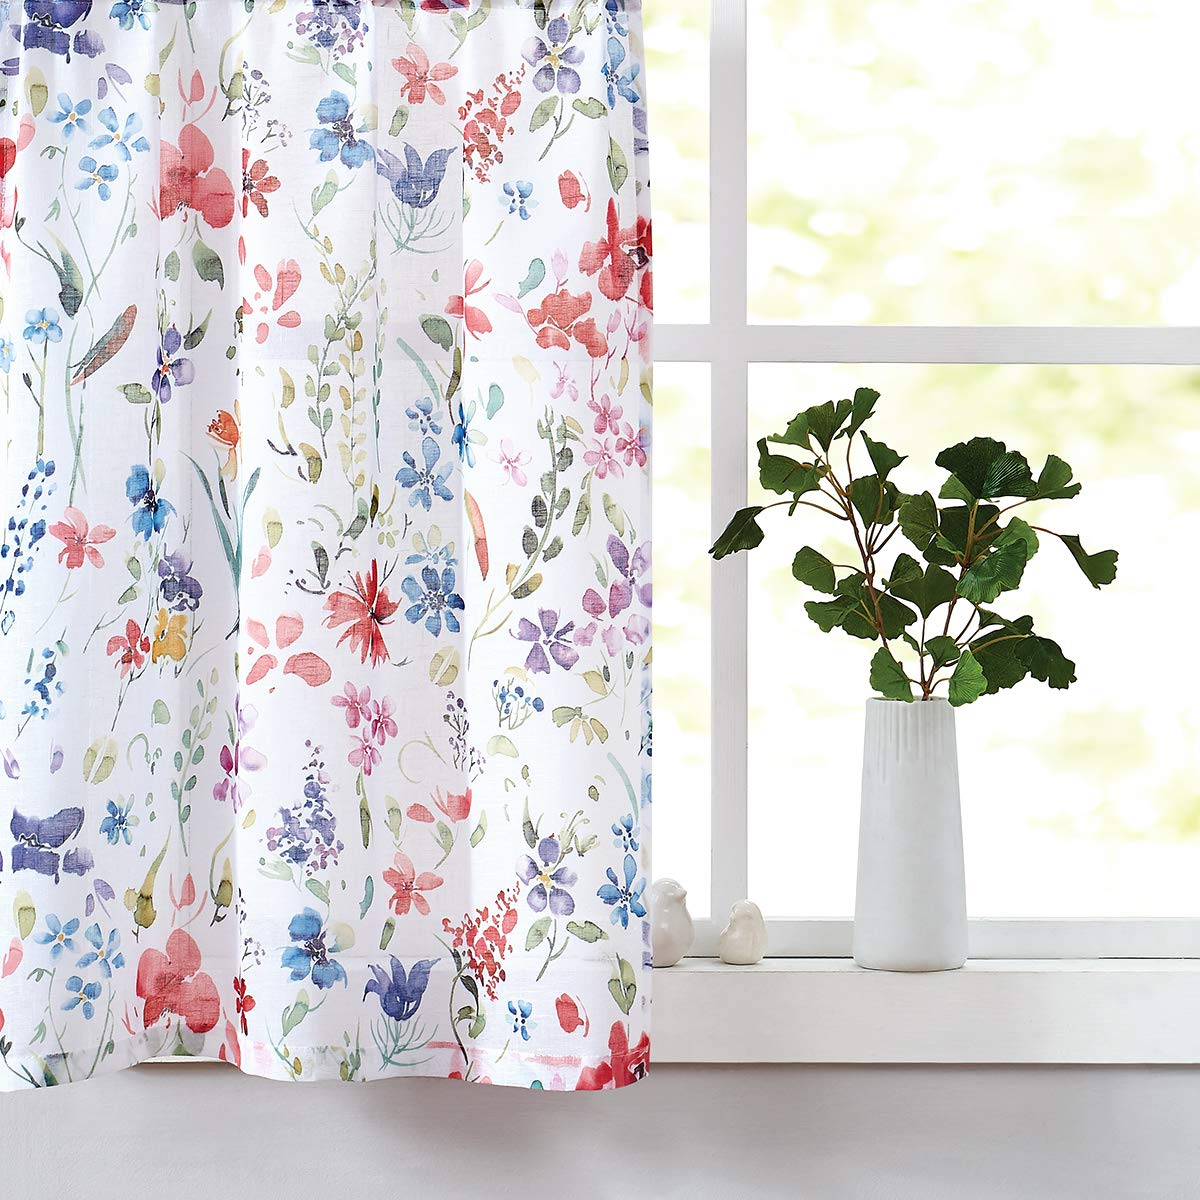 """Fragrantex Floral Print Kitchen Curtains 24"""" Multi Color Sheer Tier Curtain  Set For Windows Linen Cotton Like Curtain Panels For Laundry Room Tiers With Recent Floral Watercolor Semi Sheer Rod Pocket Kitchen Curtain Valance And Tiers Sets (View 9 of 20)"""